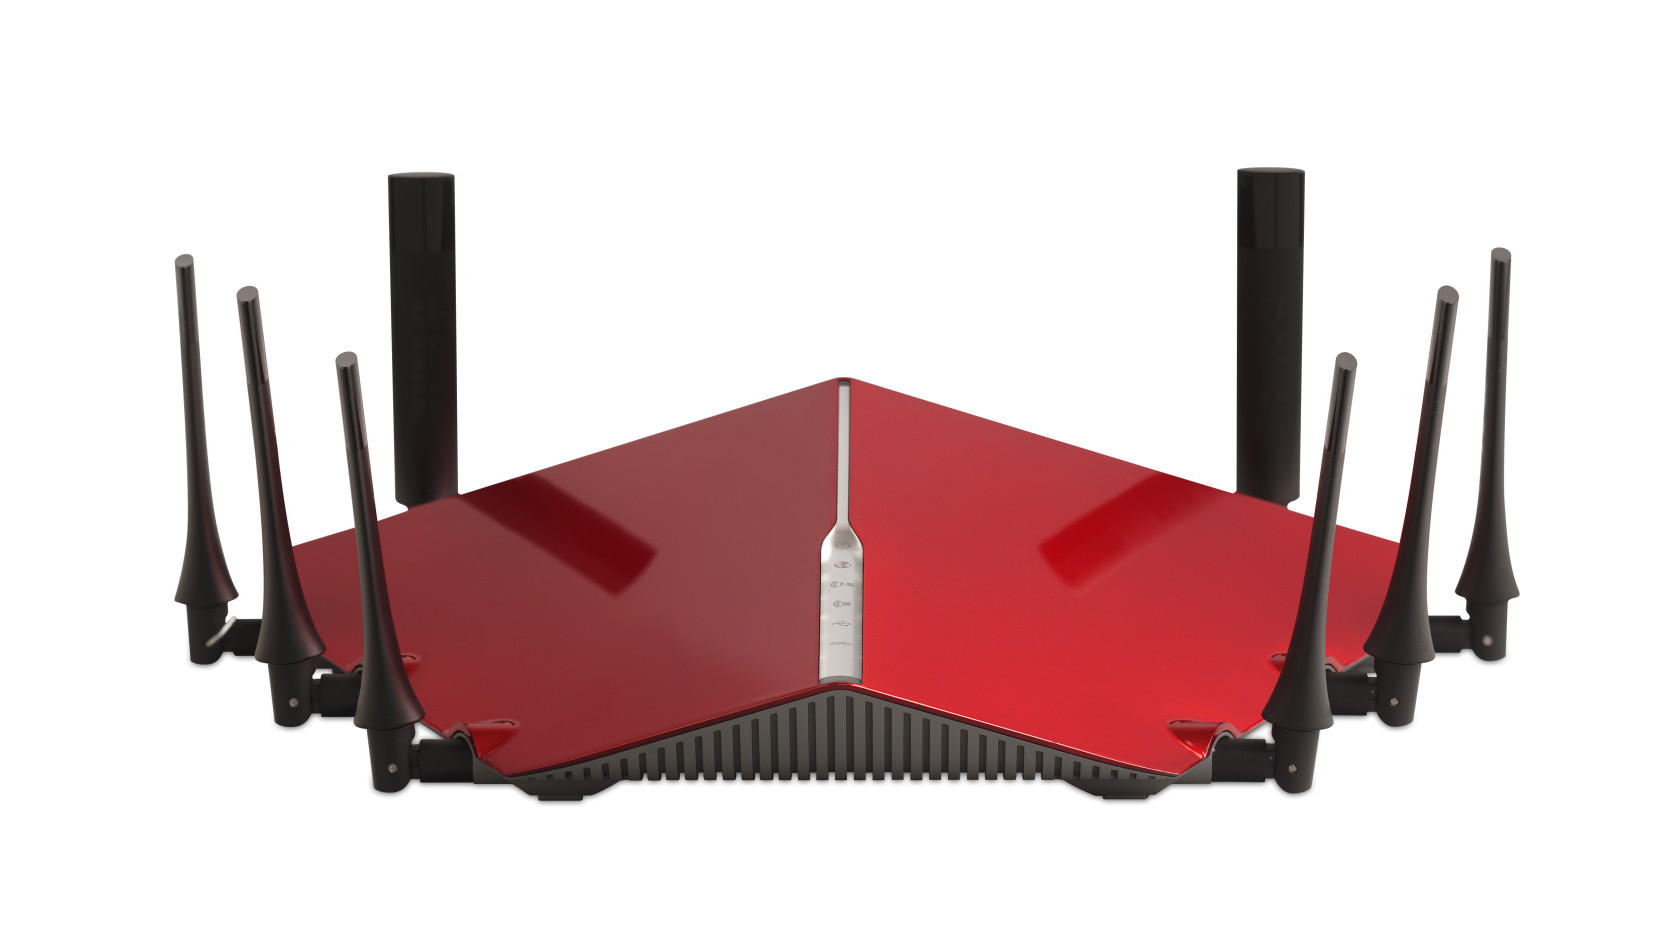 D-Link Ultra AC5300 Tri-Band Wi-Fi Router with 8 High Power Antennas